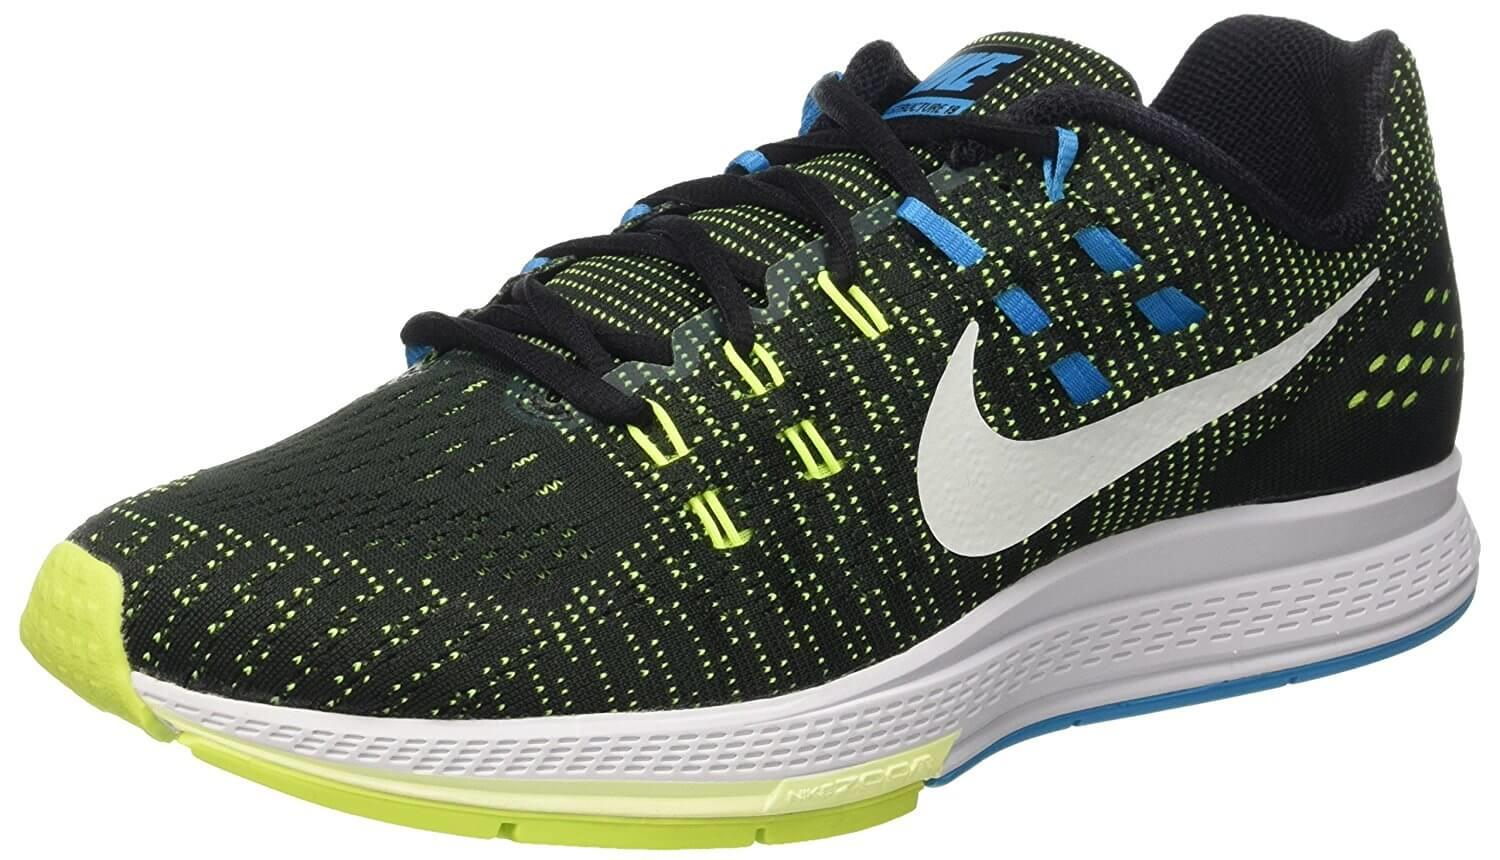 As is custom, the Nike Air Zoom Structure 19 comes in many interesting color schemes.